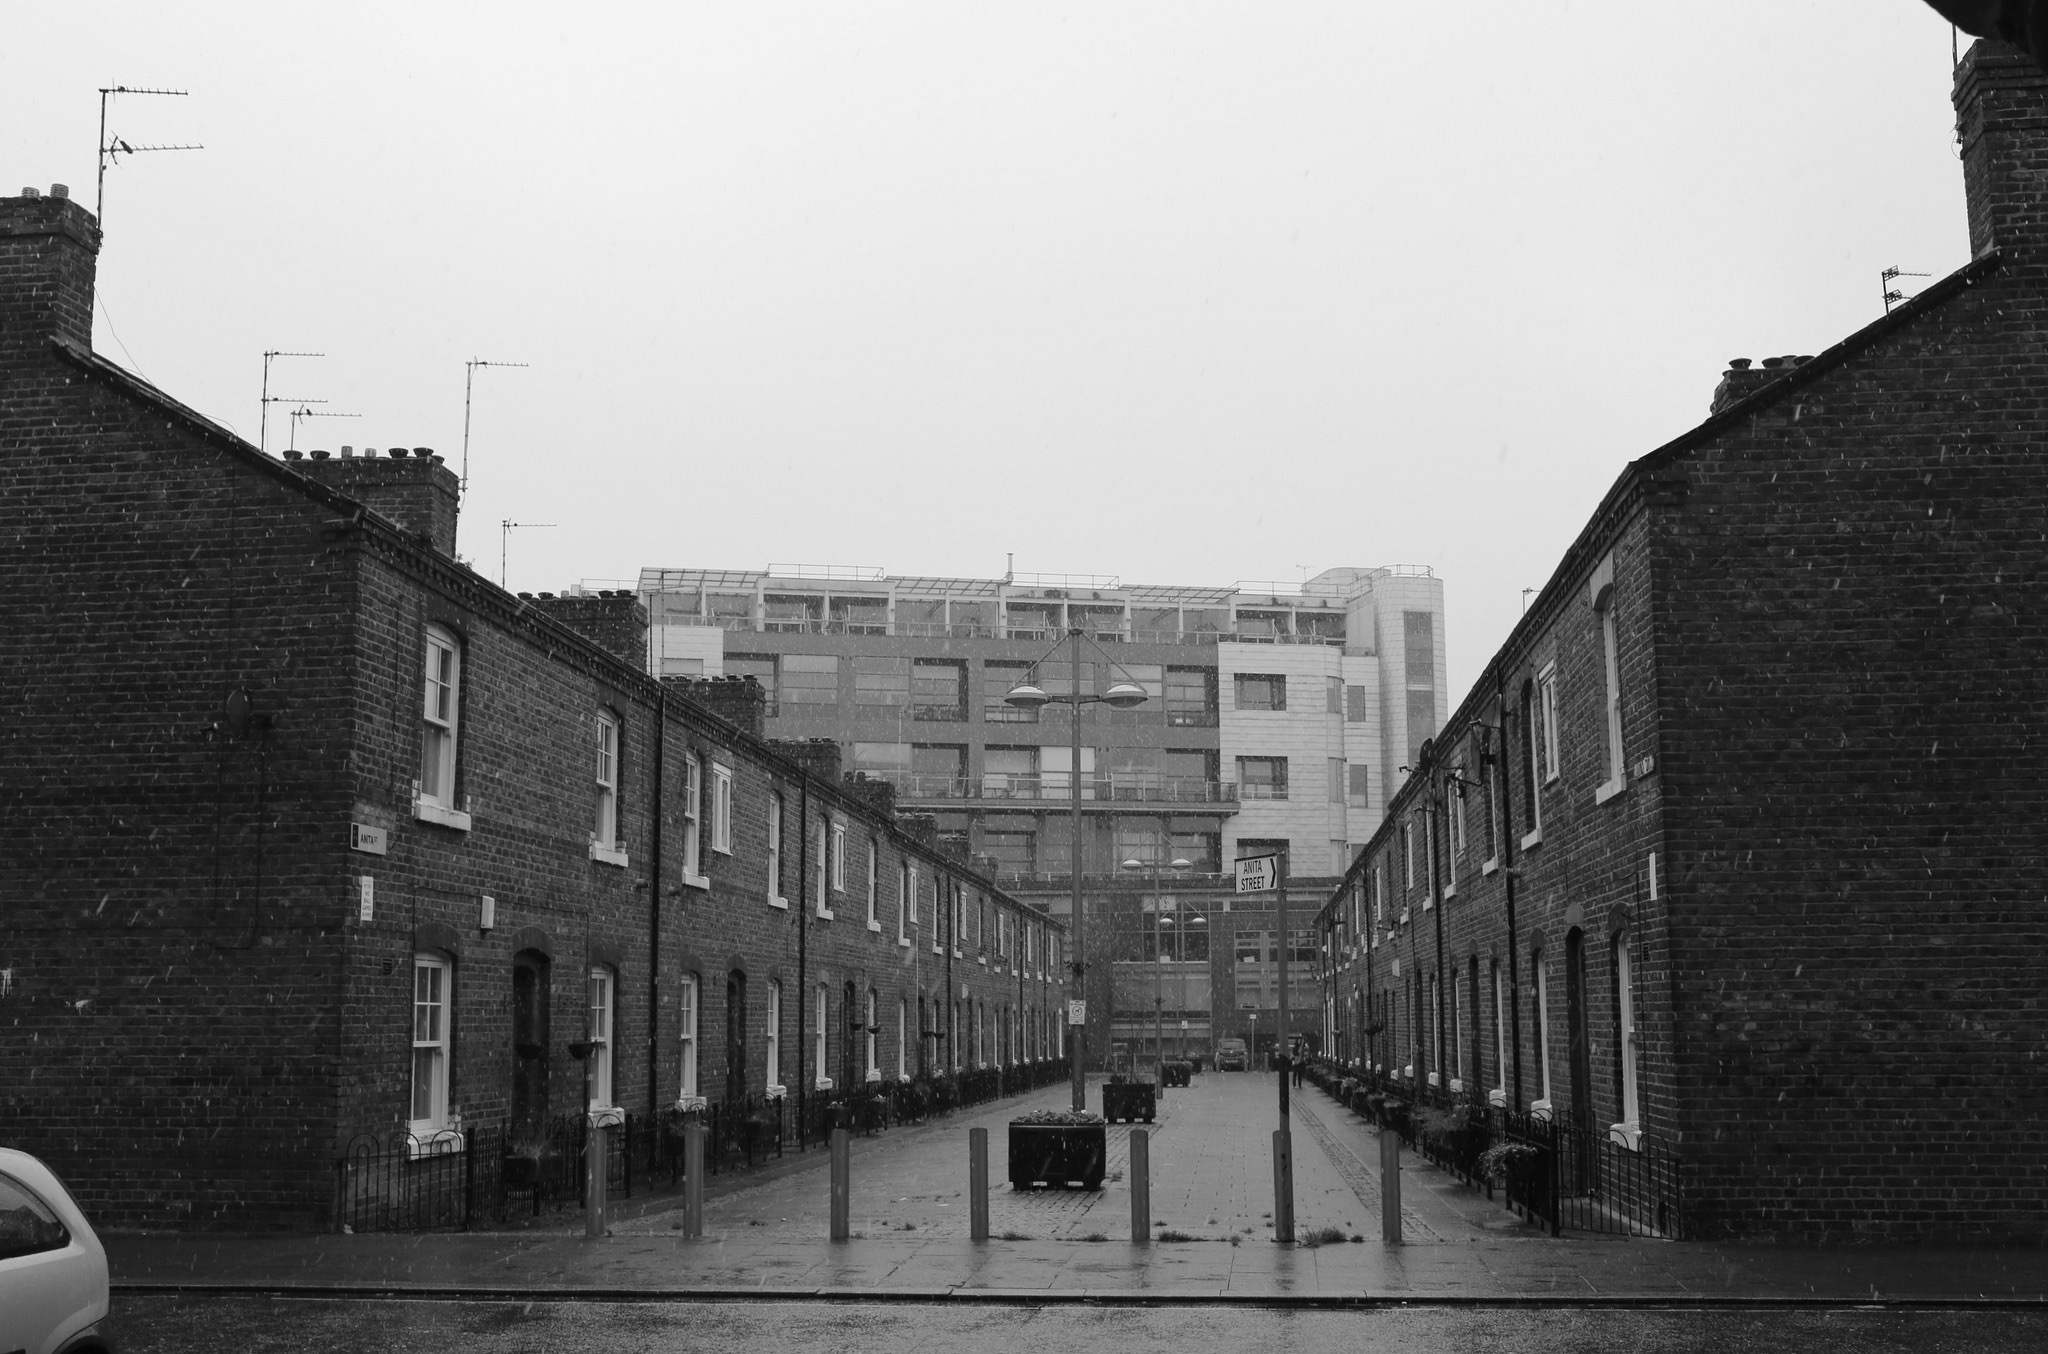 A street in Manchester